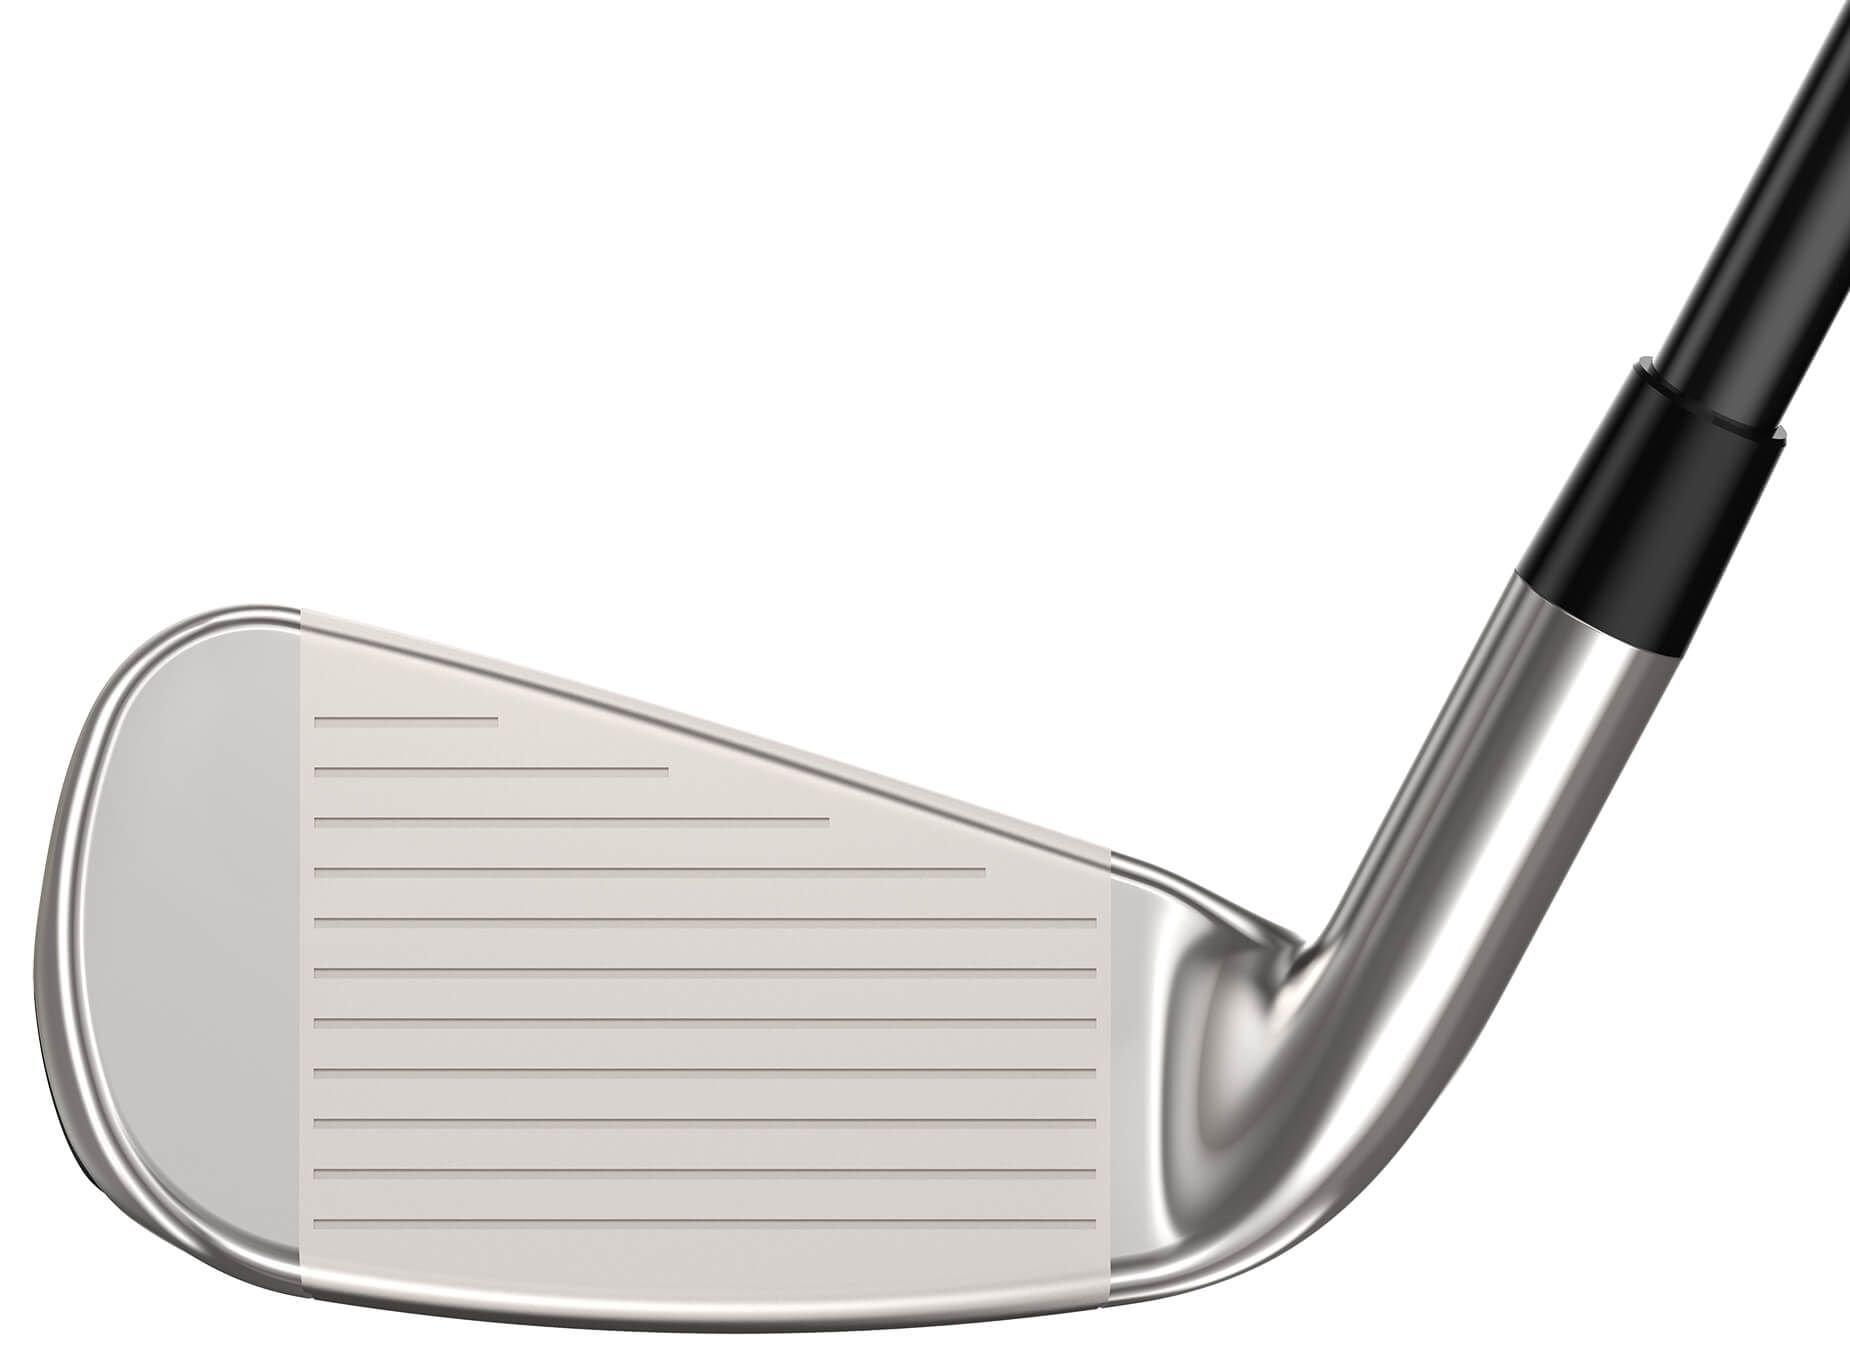 Cleveland Ladies Launcher HB Turbo Irons Face